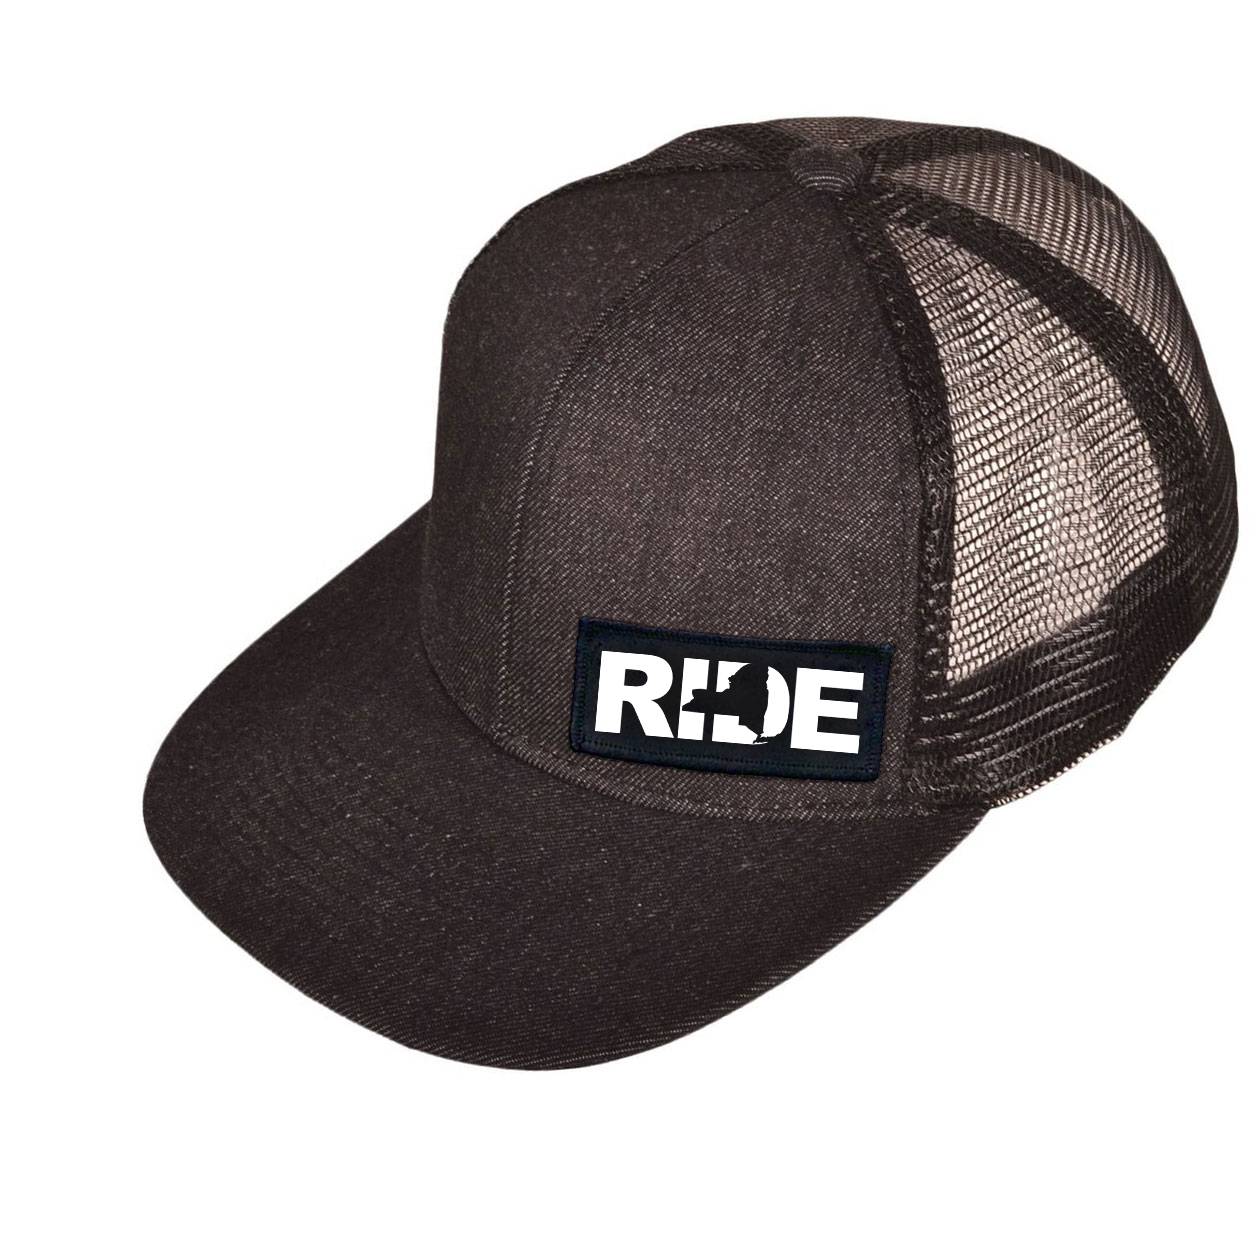 Ride New York Night Out Woven Patch Snapback Flat Brim Hat Black Denim (White Logo)